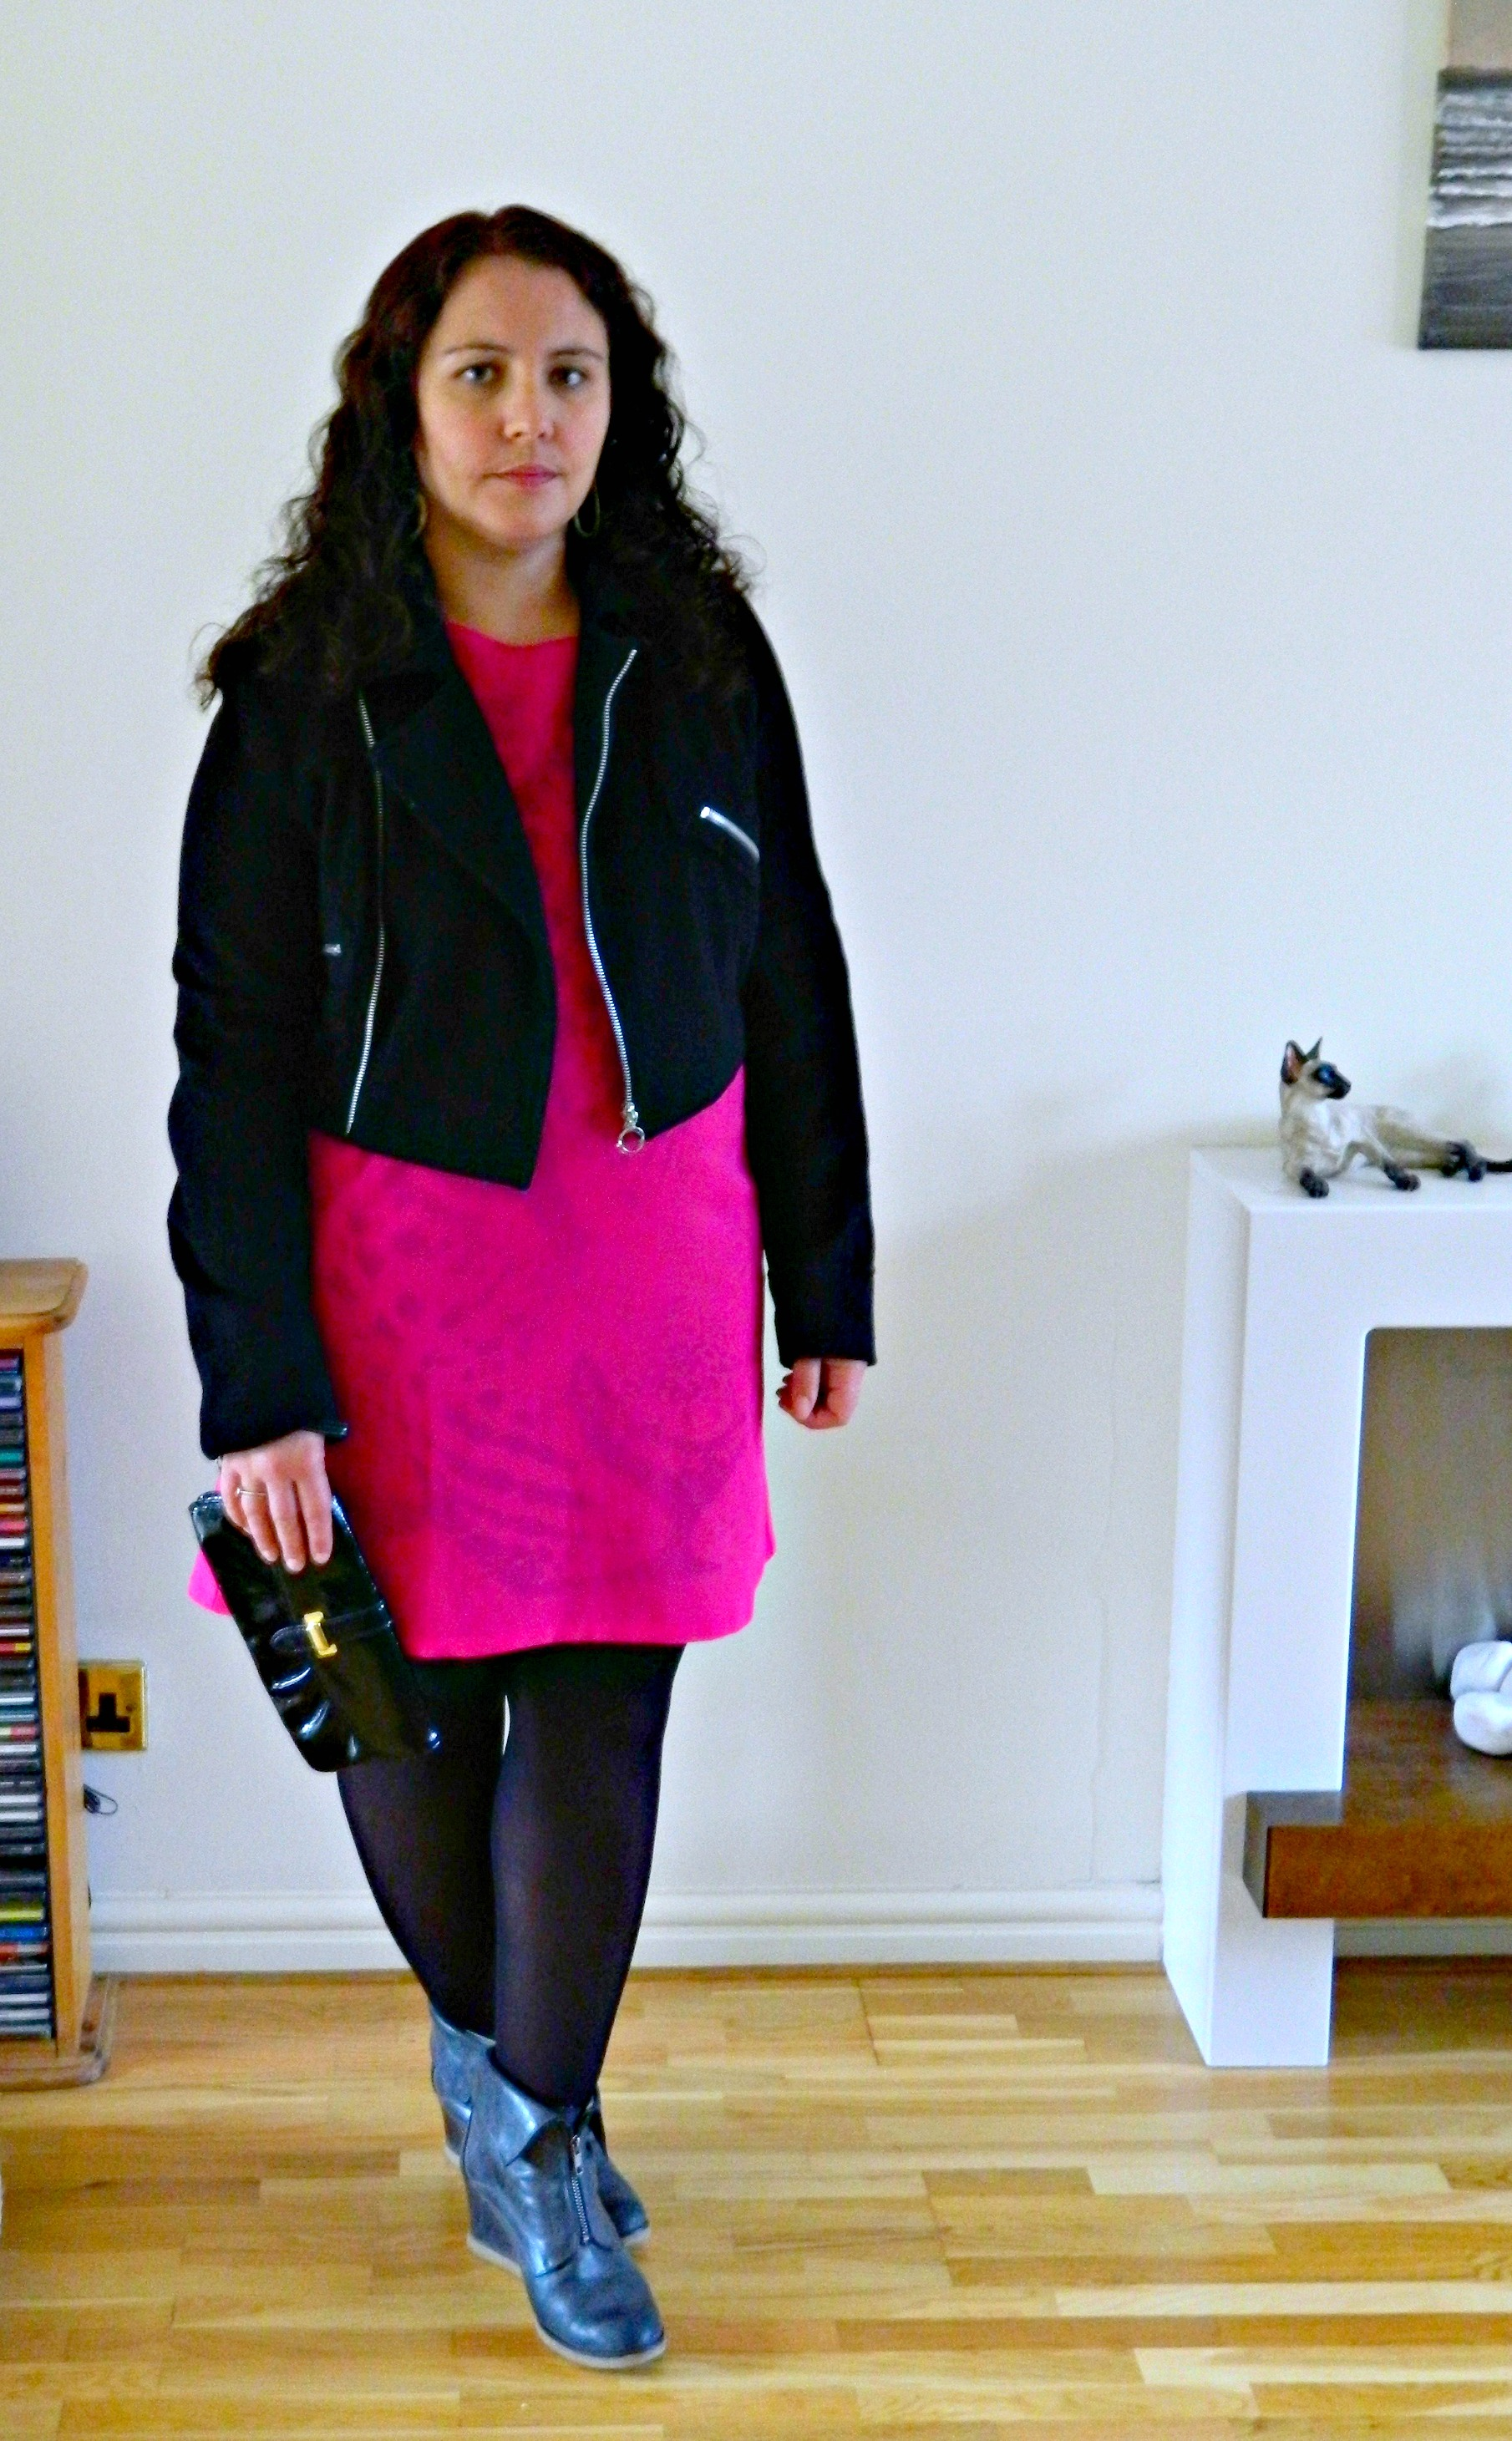 023a Outfit of the Day   Its Been a While!